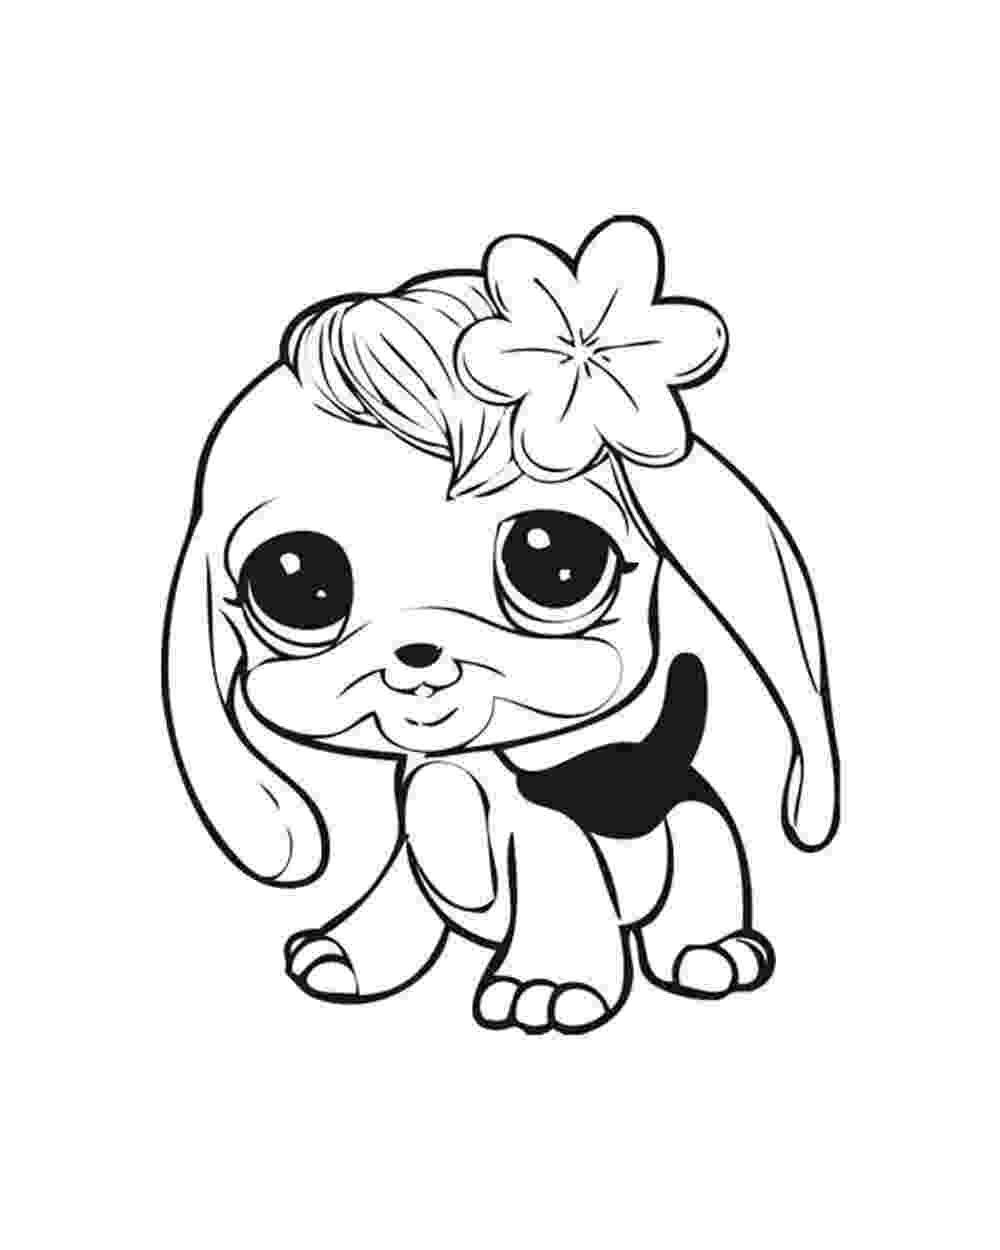 littlest pet shop colouring sheets littlest pet shop coloring pages for kids to print for free littlest colouring sheets shop pet